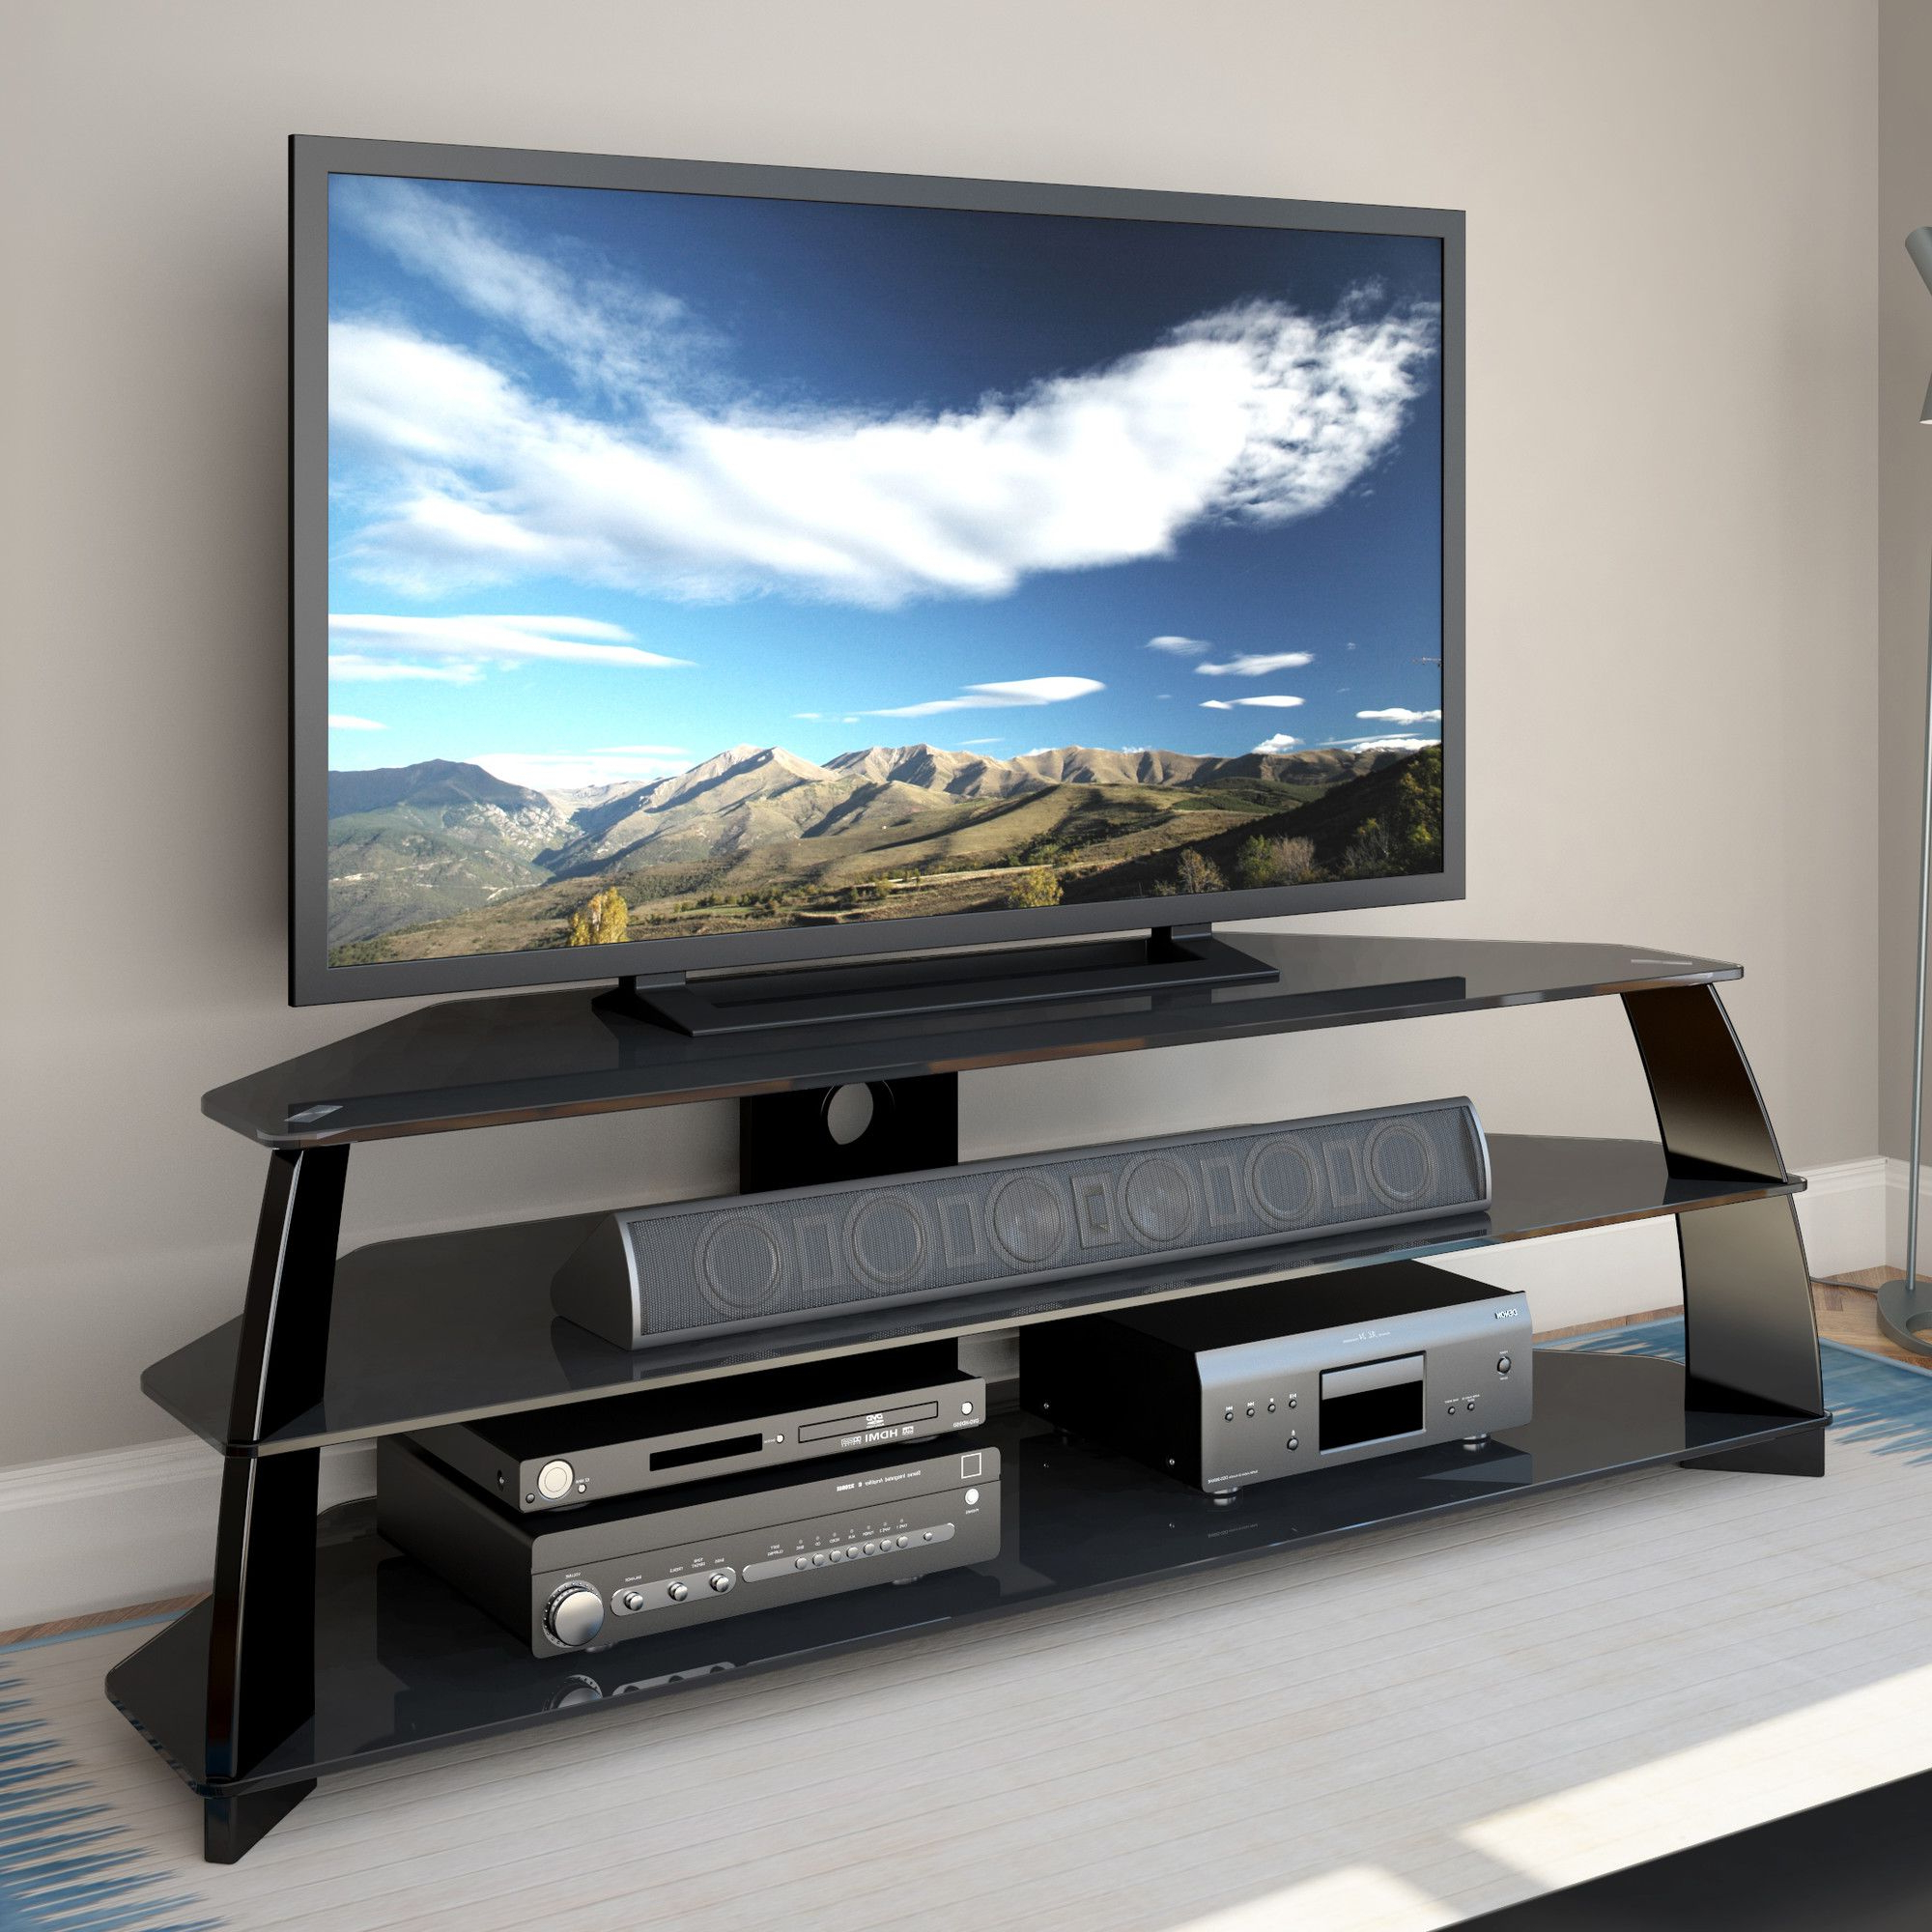 """Online Home Store For Furniture, Decor, Outdoors & More Inside Widely Used Caleah Tv Stands For Tvs Up To 65"""" (View 14 of 25)"""